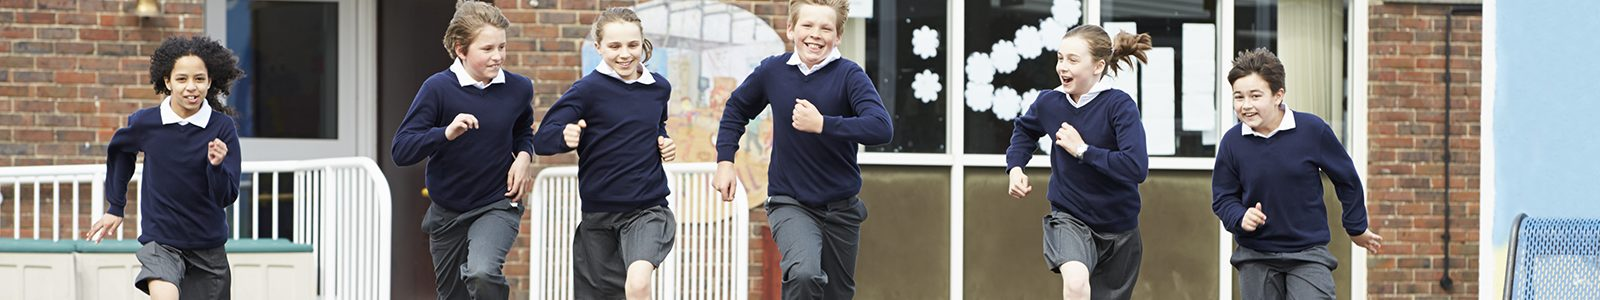 School Clothing : From uniforms to leavers' hoodies